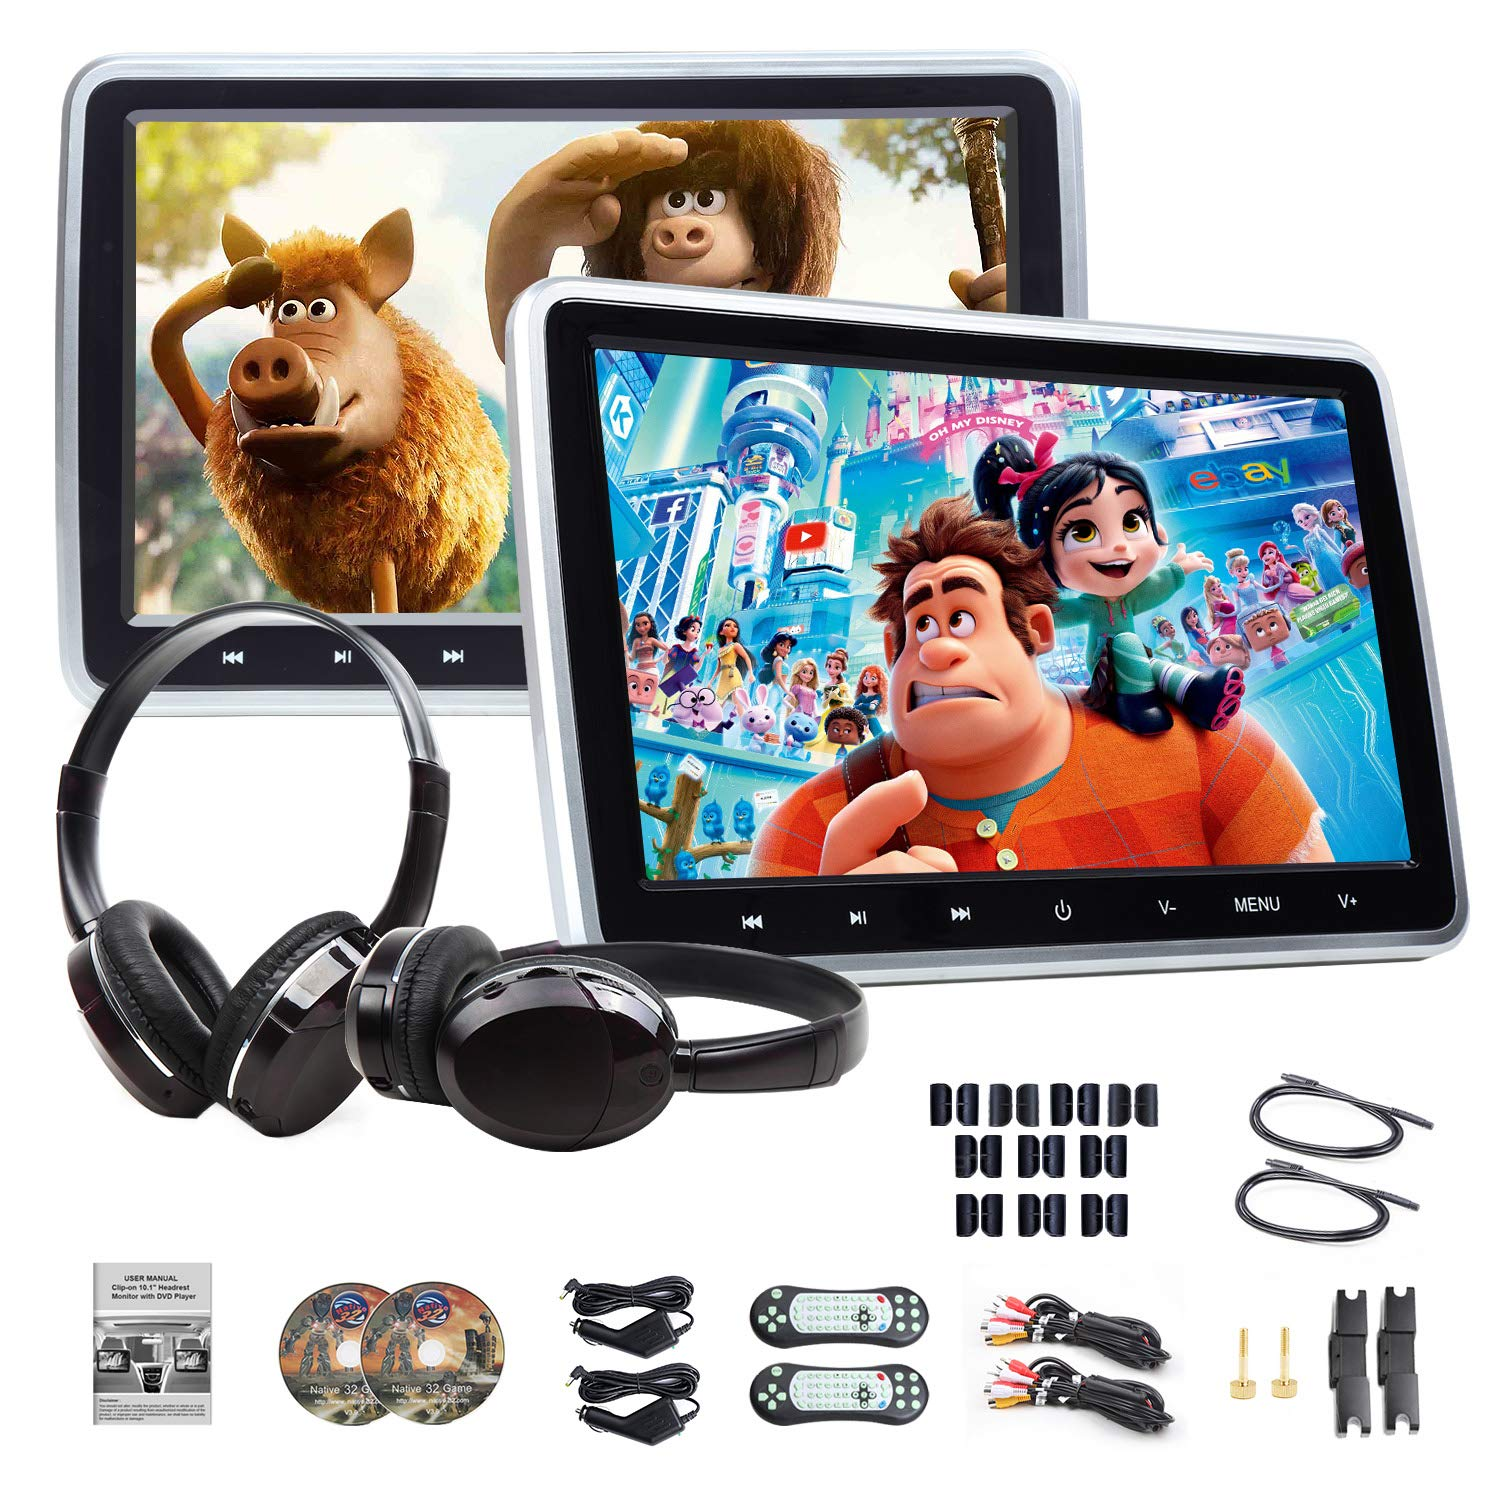 2019 Car Headrest Monitors Eonon C1100A 10.1 Inch Portable DVD Player for Kids Car Digital Touch Screen Headrest DVD Player with Digital Touch Button HDMI USB SD Port (Two Headrests-Black)